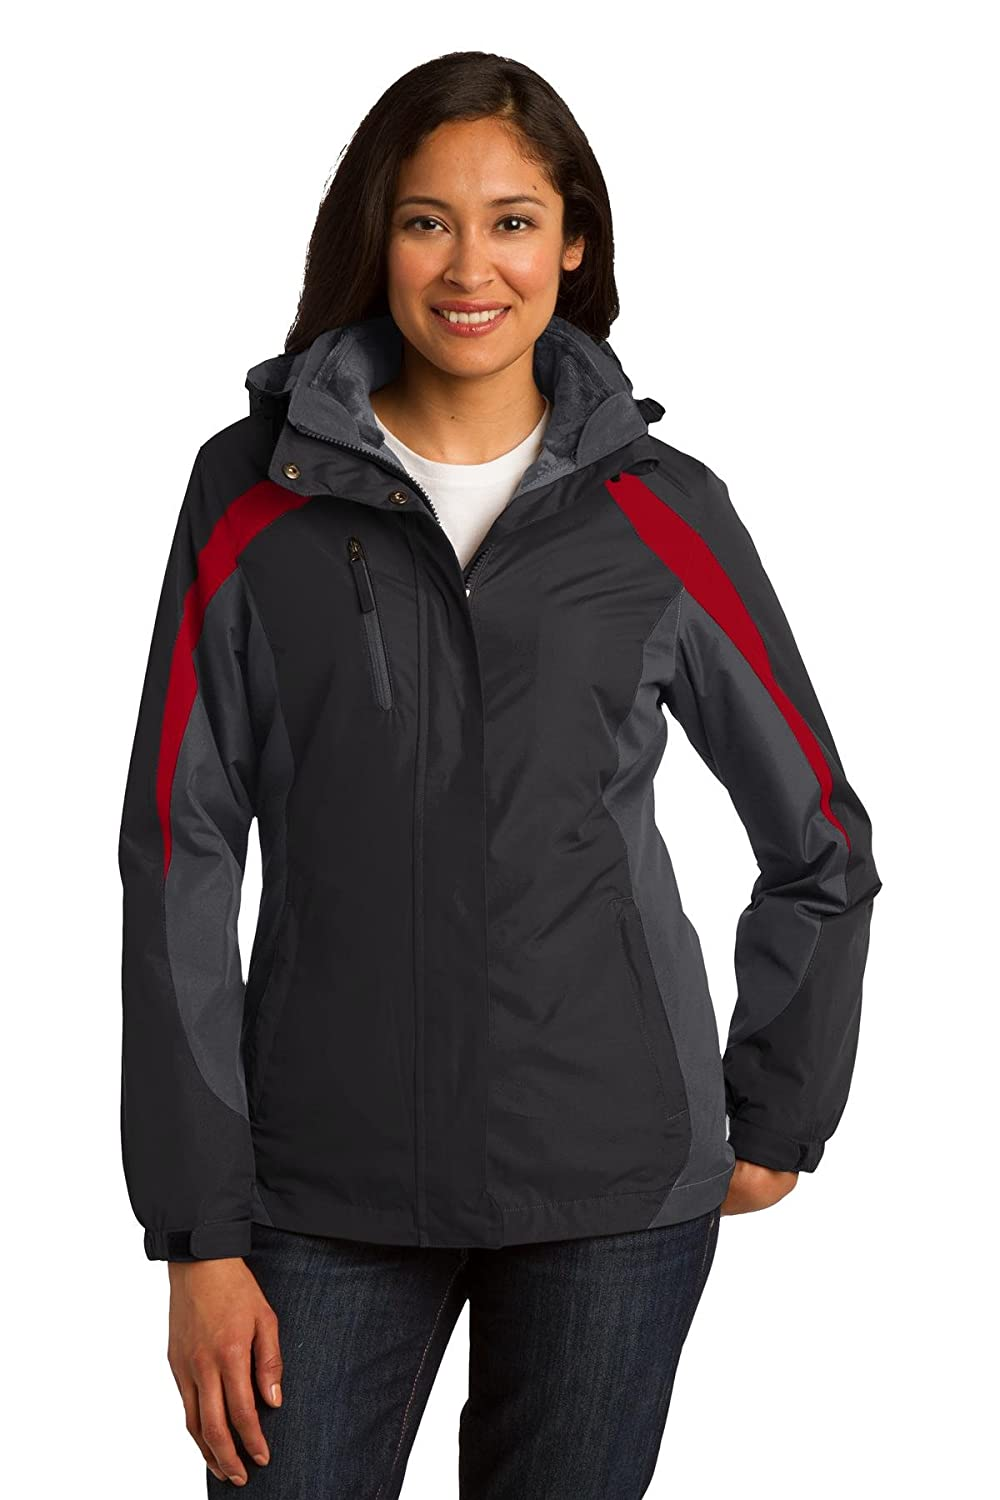 Port Authority Women's Colorblock 3in1 Jacket Colorblock 3in1 Jacket L321-Women' s